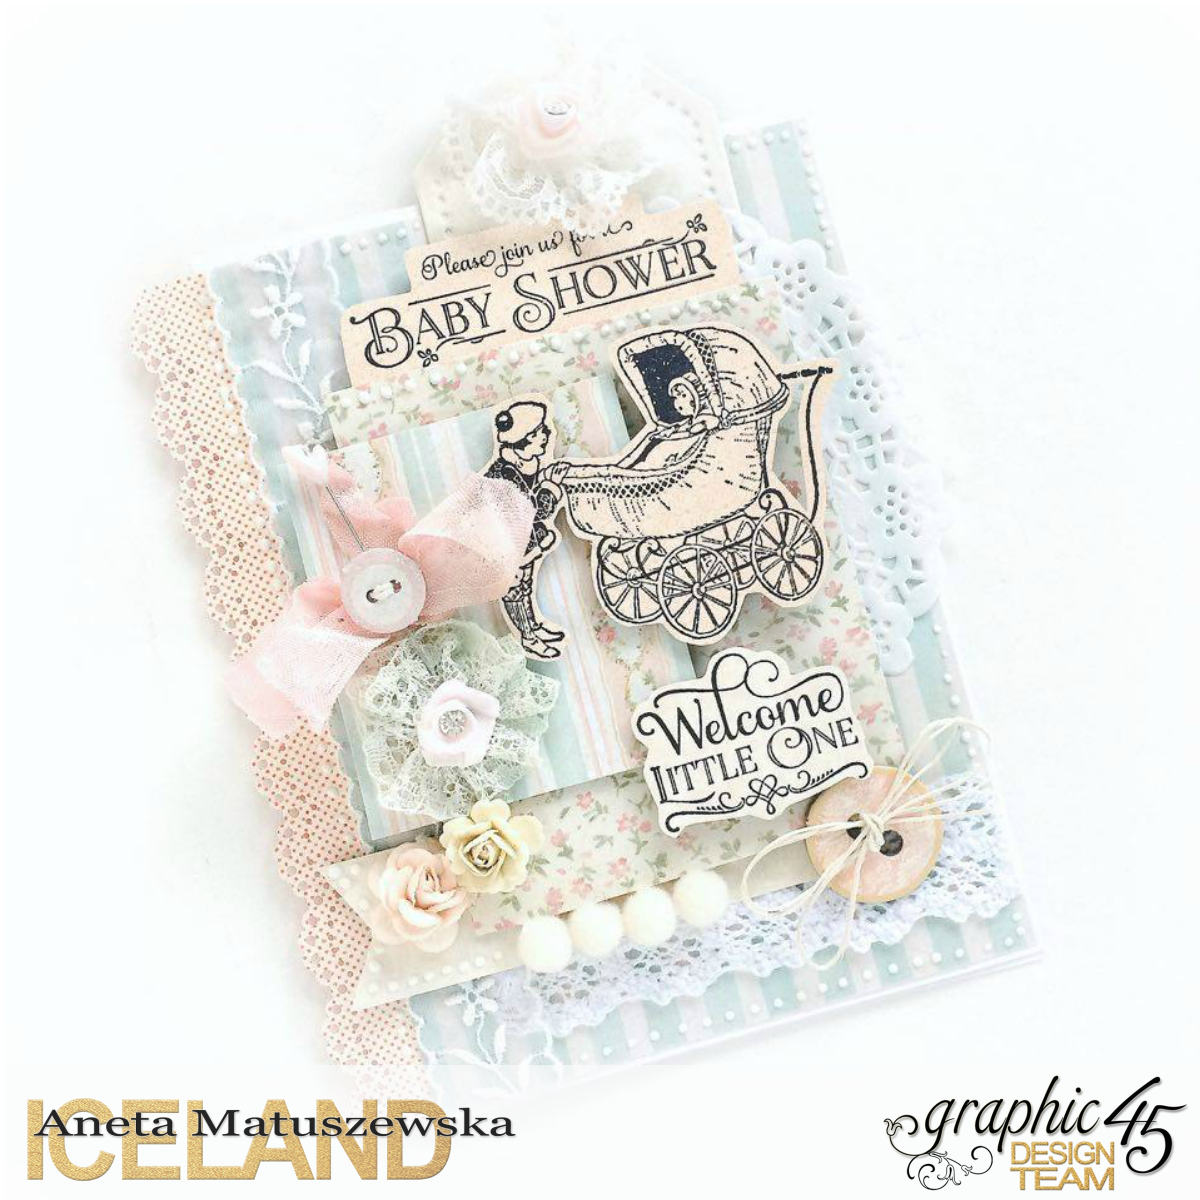 Baby 2 Bride baby shower card for Graphic 45, by Aneta Matuszewska, photo 1.png